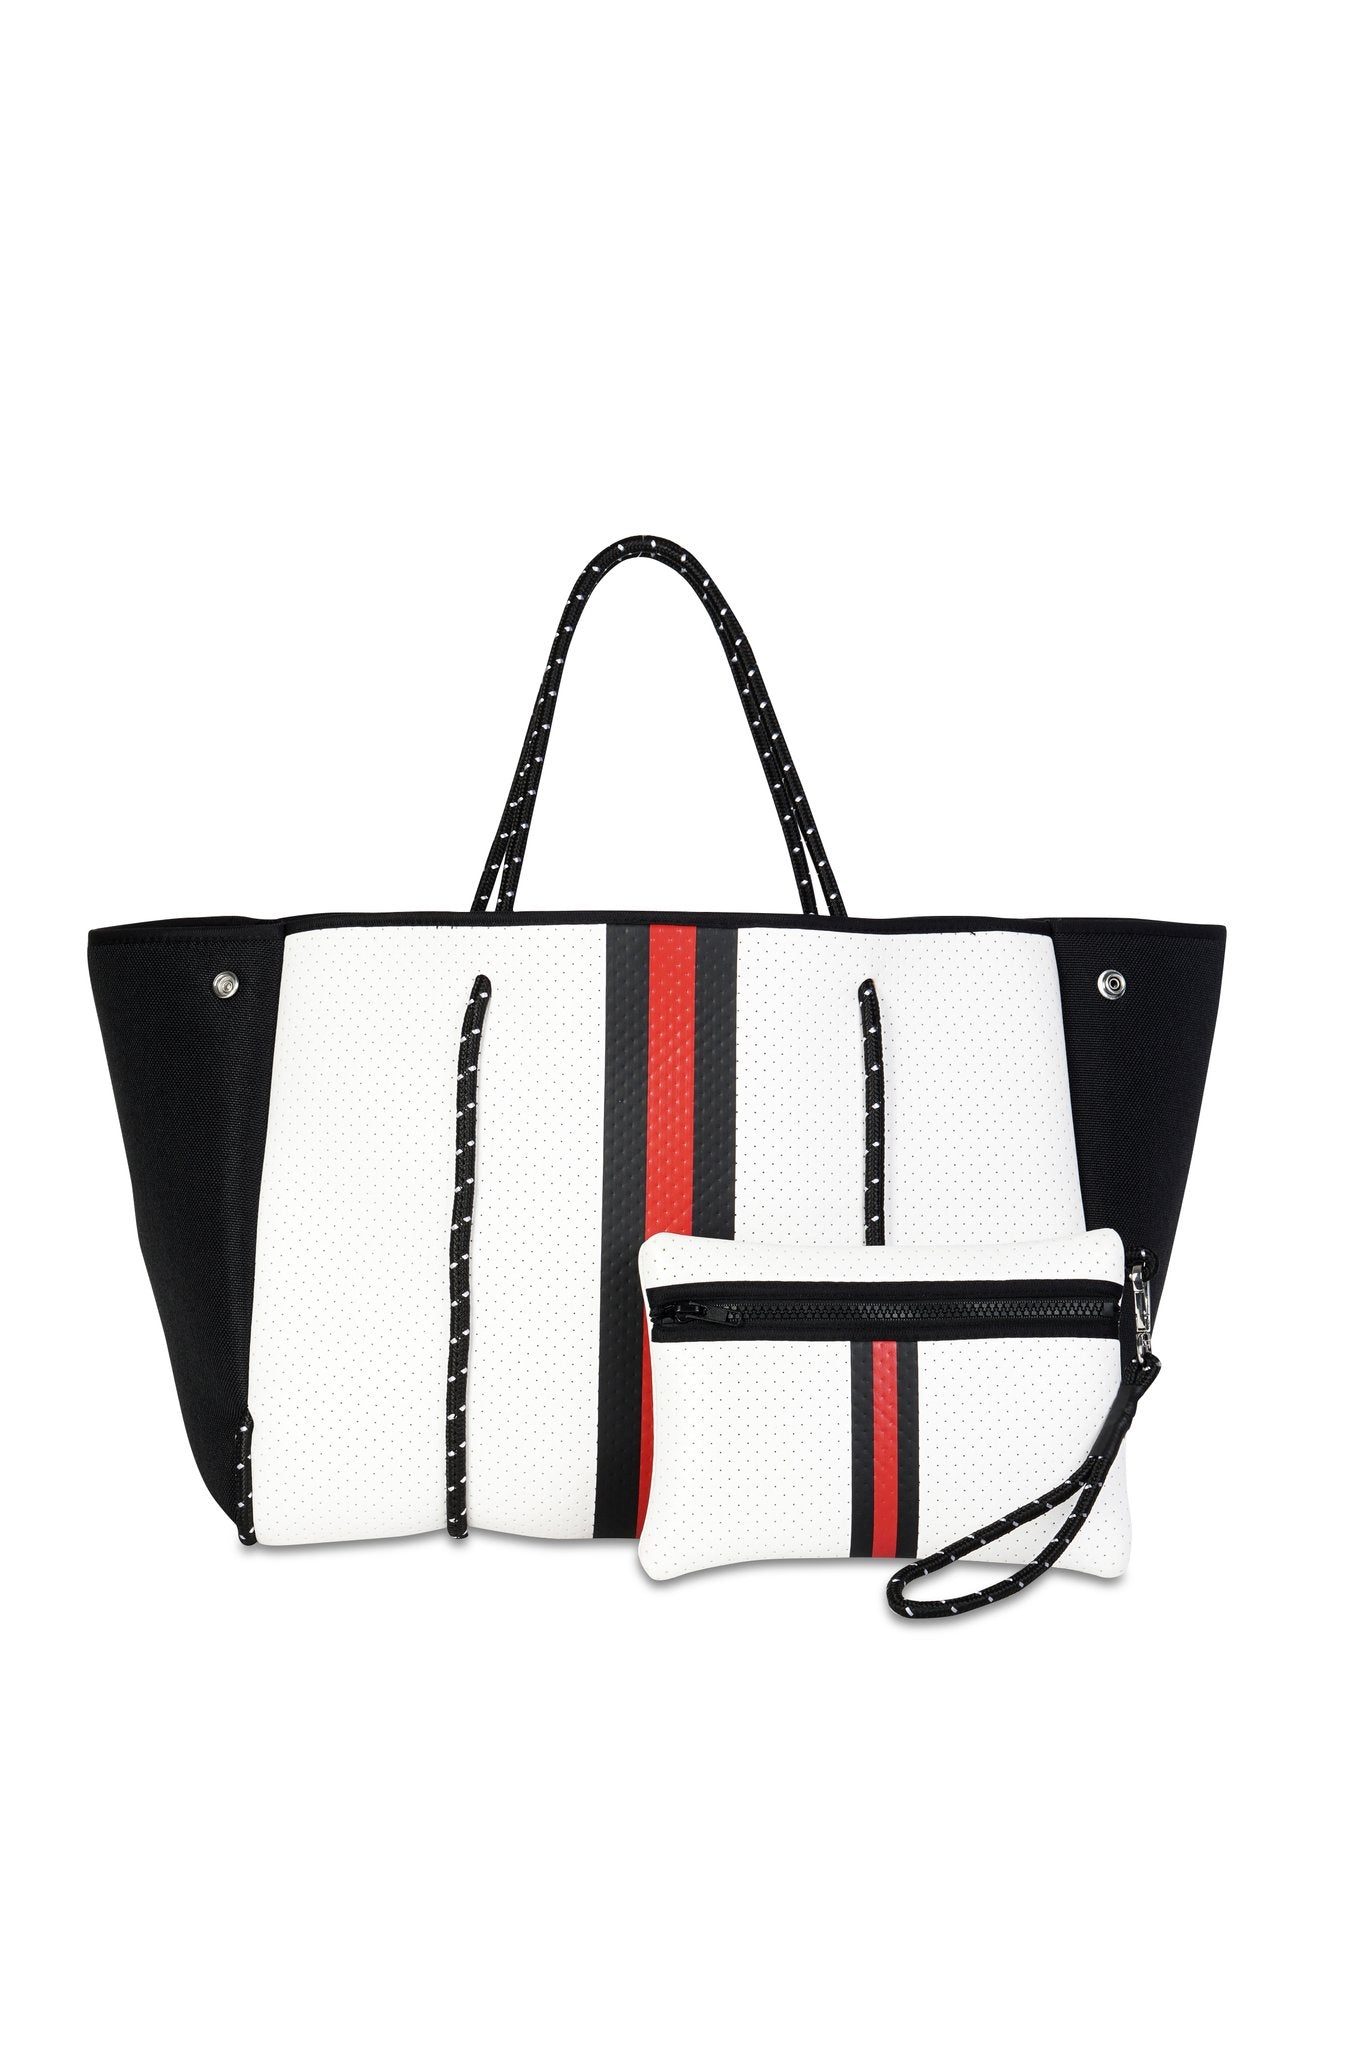 Greyson Madison Neoprene Tote